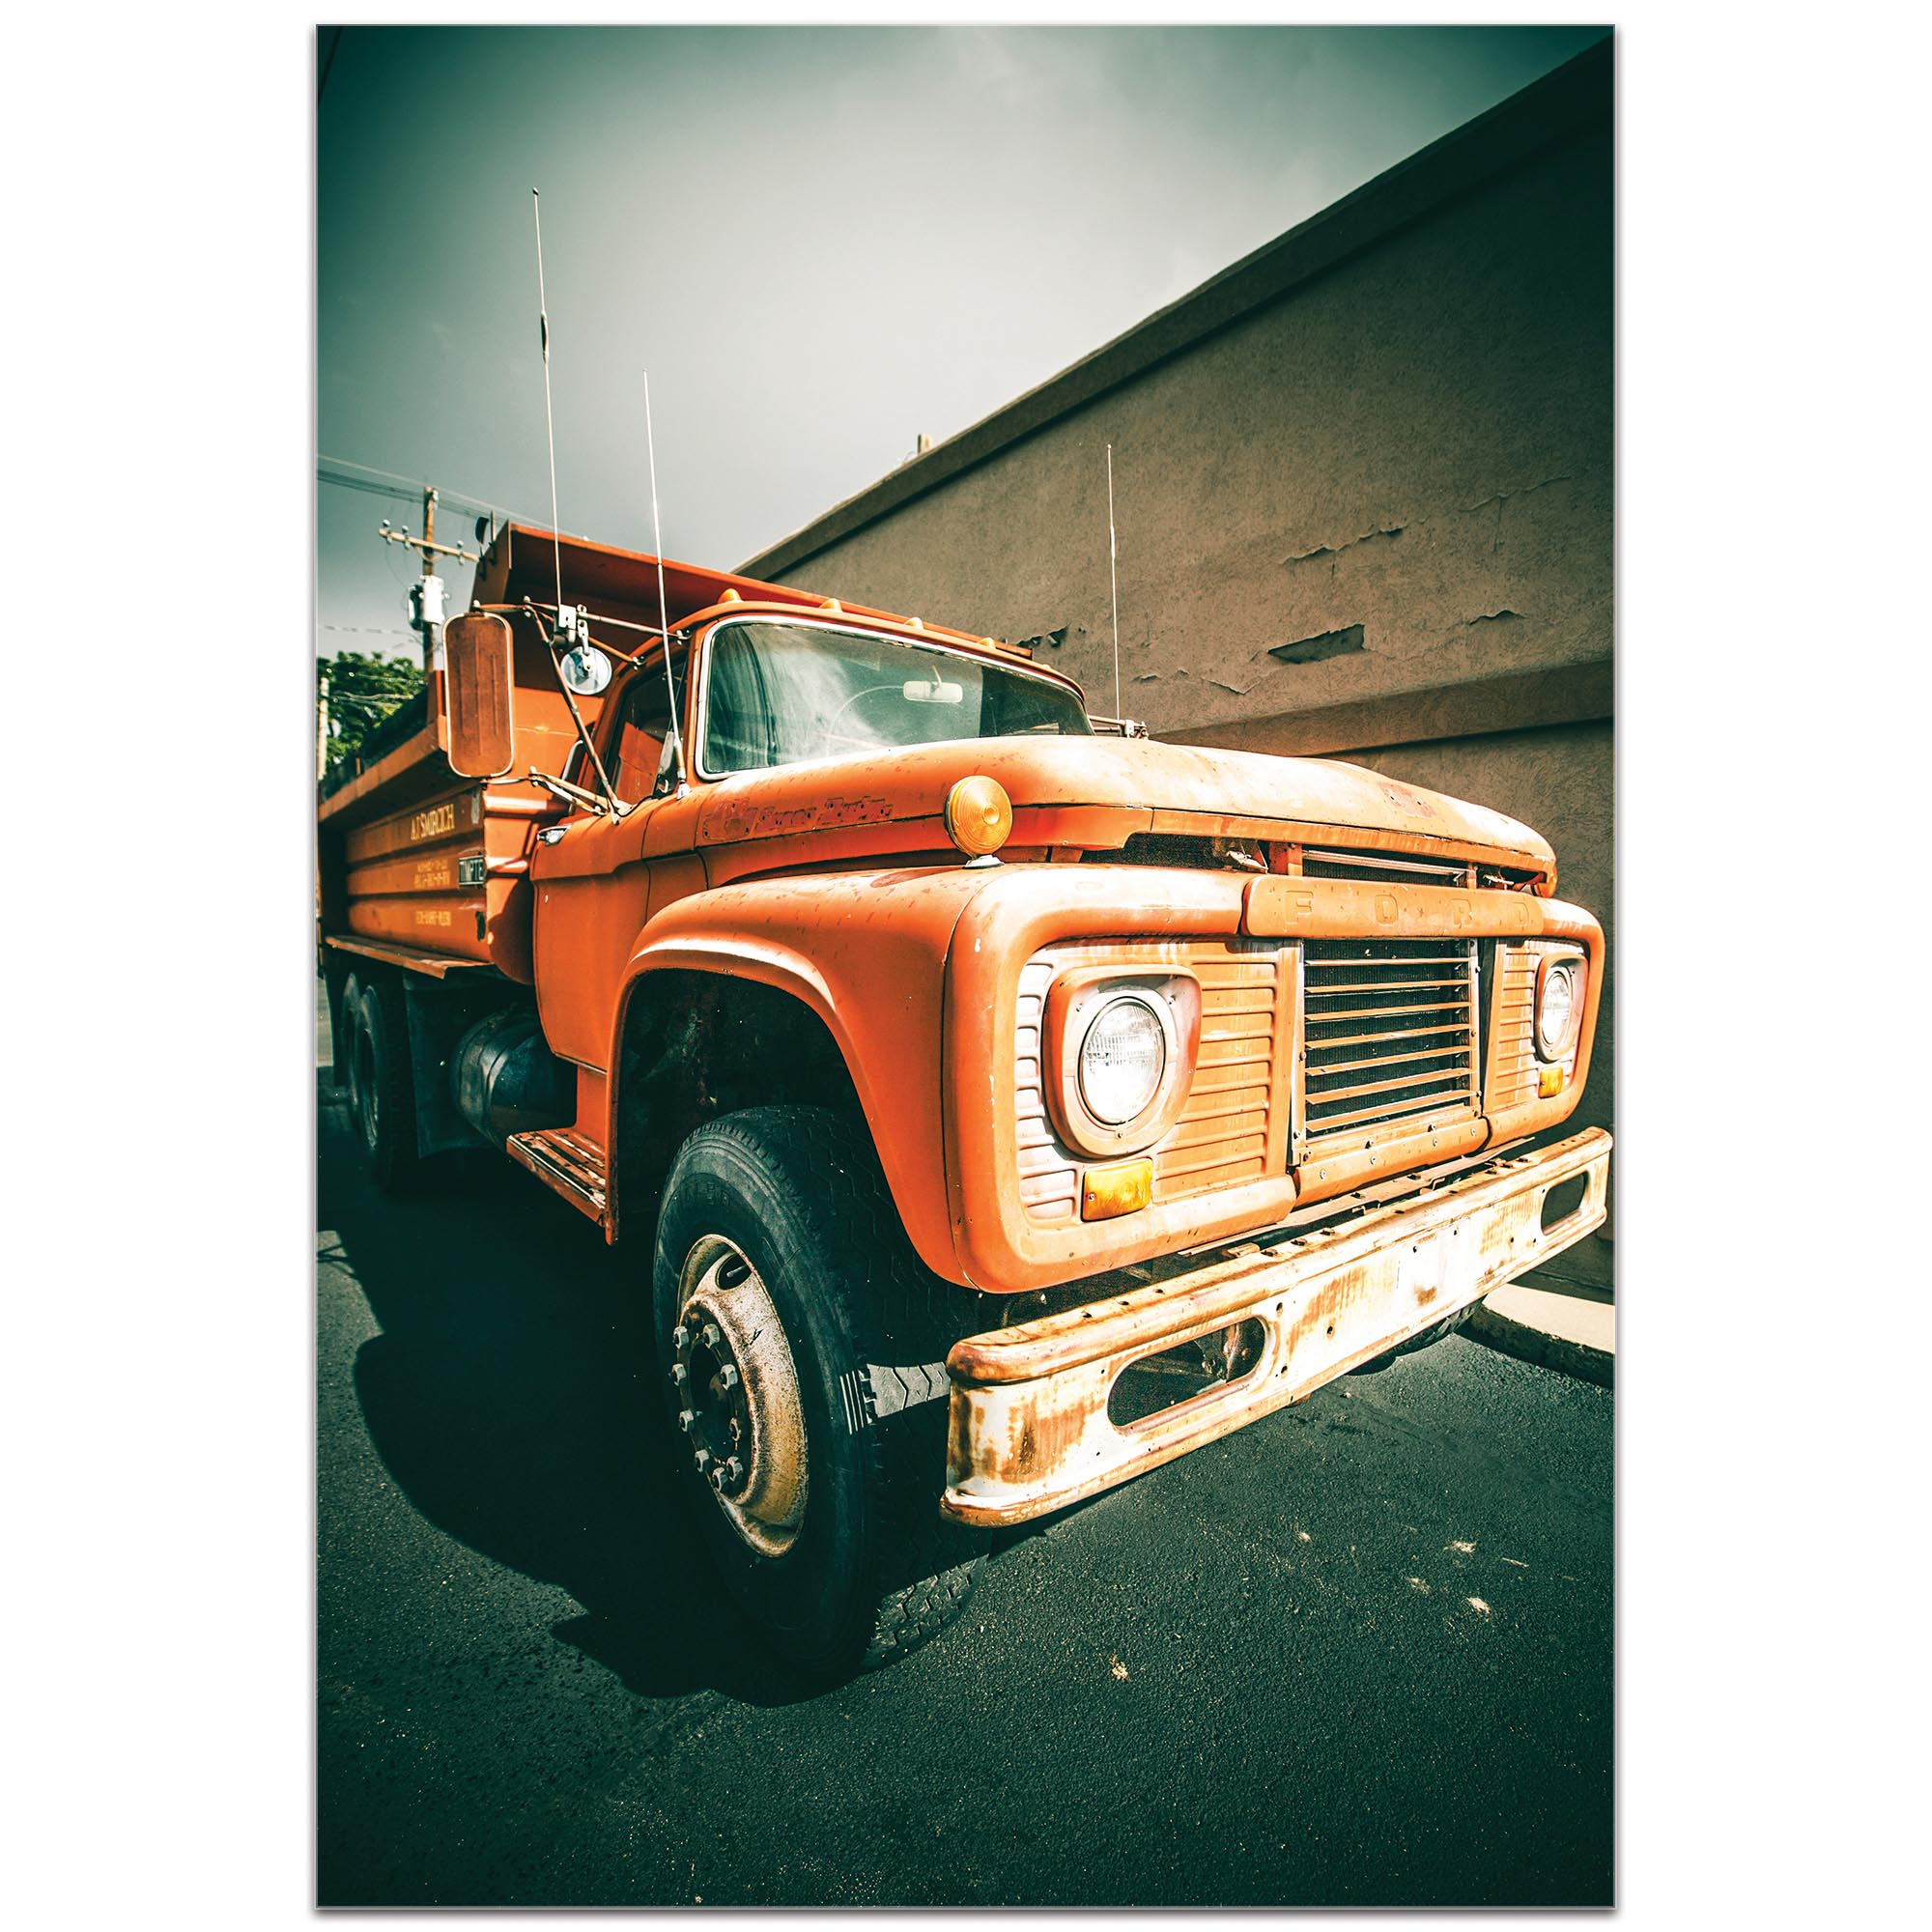 Americana Wall Art 'Old Dump' - Classic Truck Decor on Metal or Plexiglass - Image 2